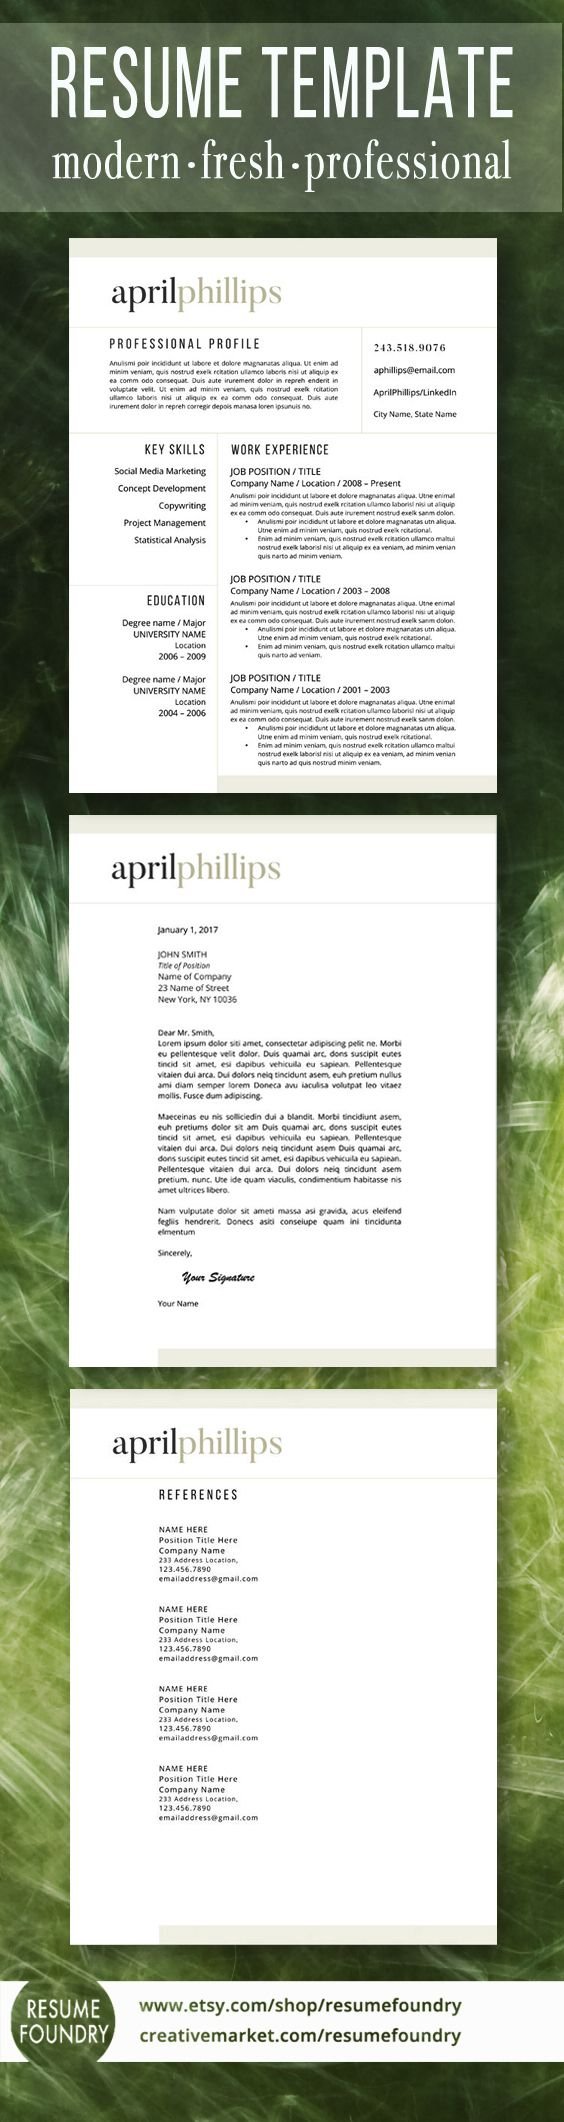 Resume Design Sweet Resume Template Package Includes One Two Or